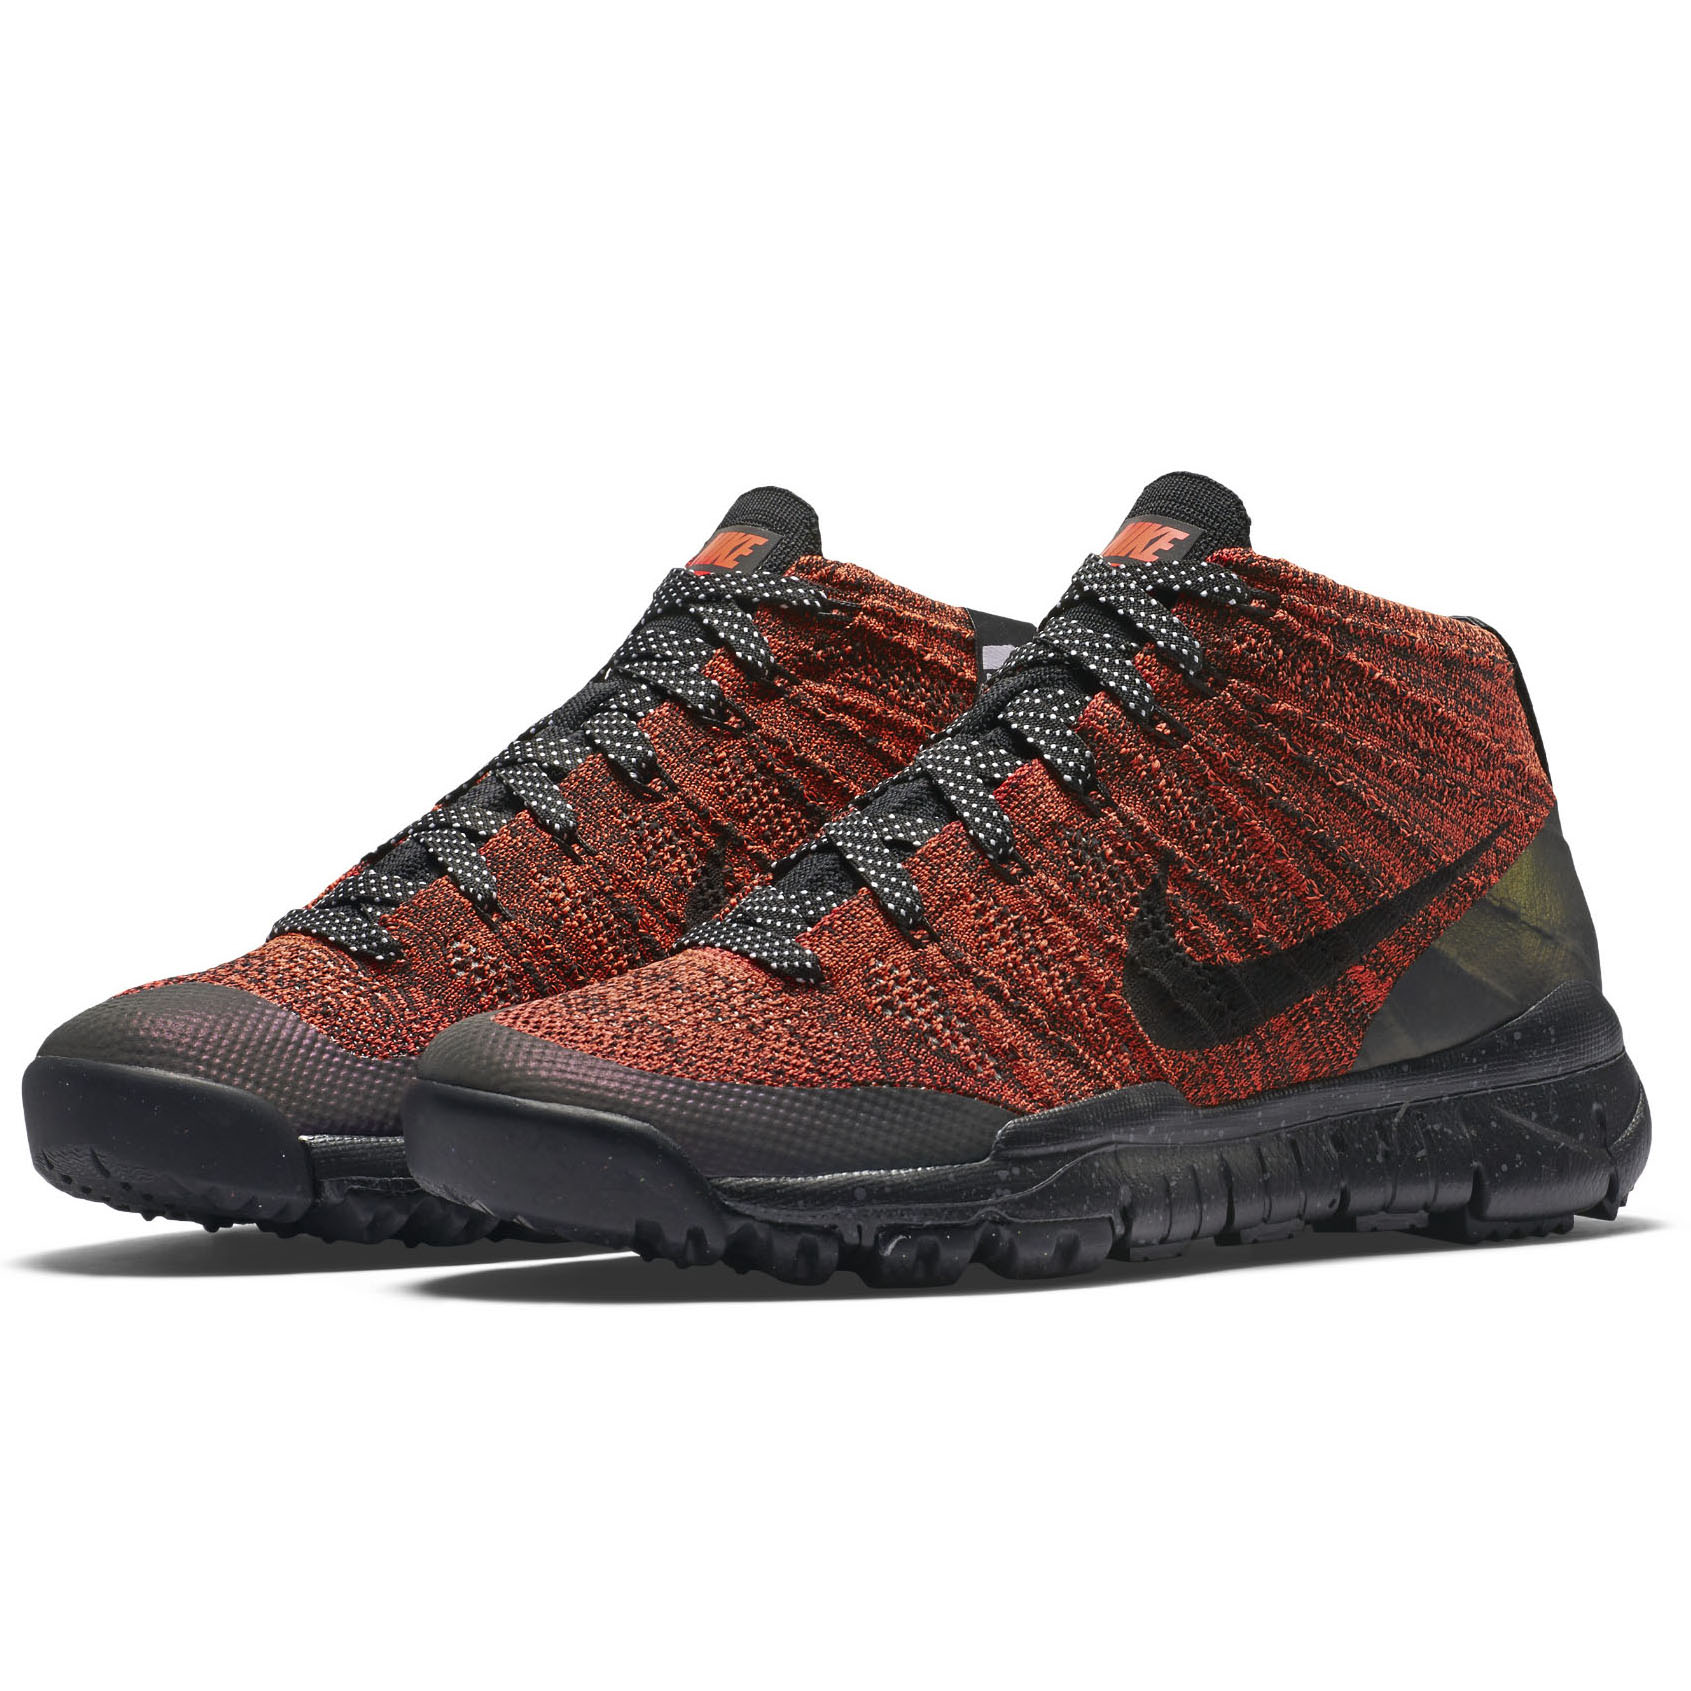 finest selection 81f36 d56cb ... aliexpress nike womens w flyknit trainer chukka fsb bright crimson  black sequoia fabric size 8.5 3ee39